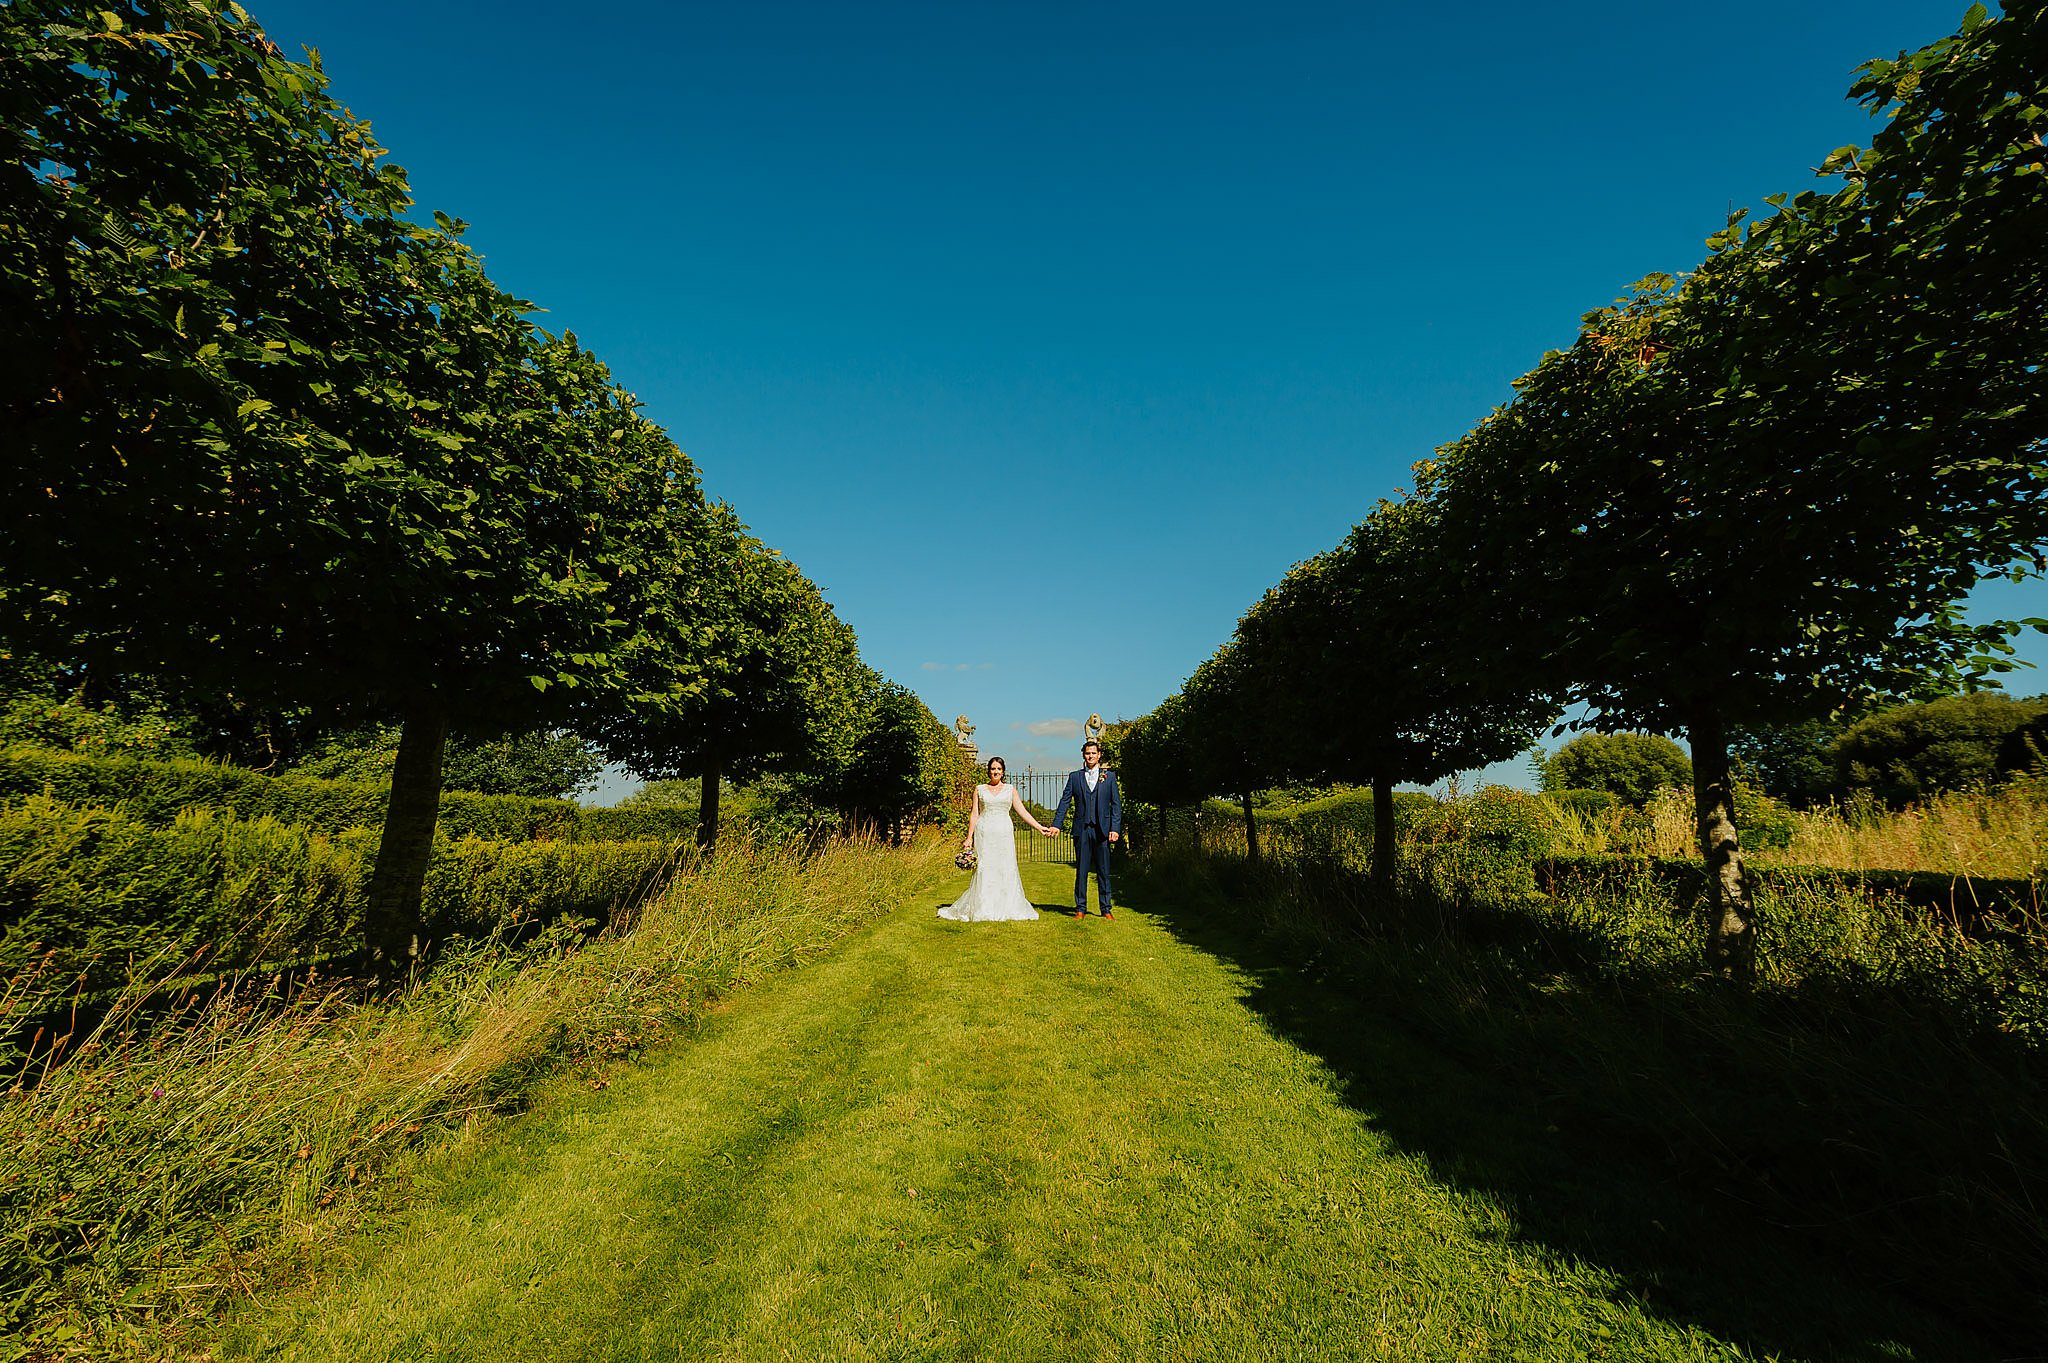 Wedding photography at Hellens Manor in Herefordshire, West Midlands | Shelley + Ian 71